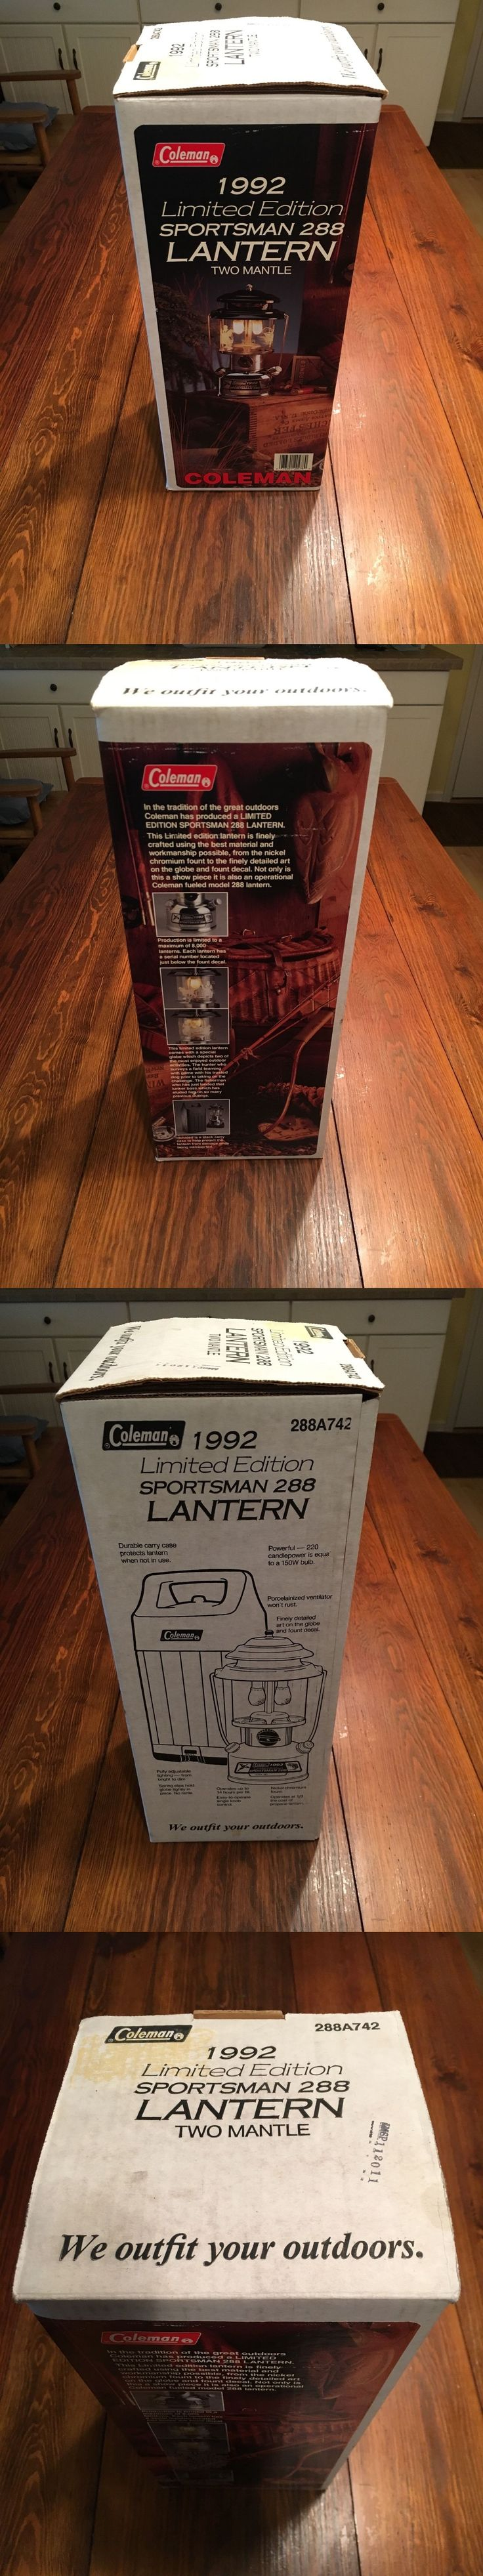 Lanterns 168867: Coleman 1992 Limited Edition Sportsman 288 Lantern New In Box !!! -> BUY IT NOW ONLY: $400 on eBay!